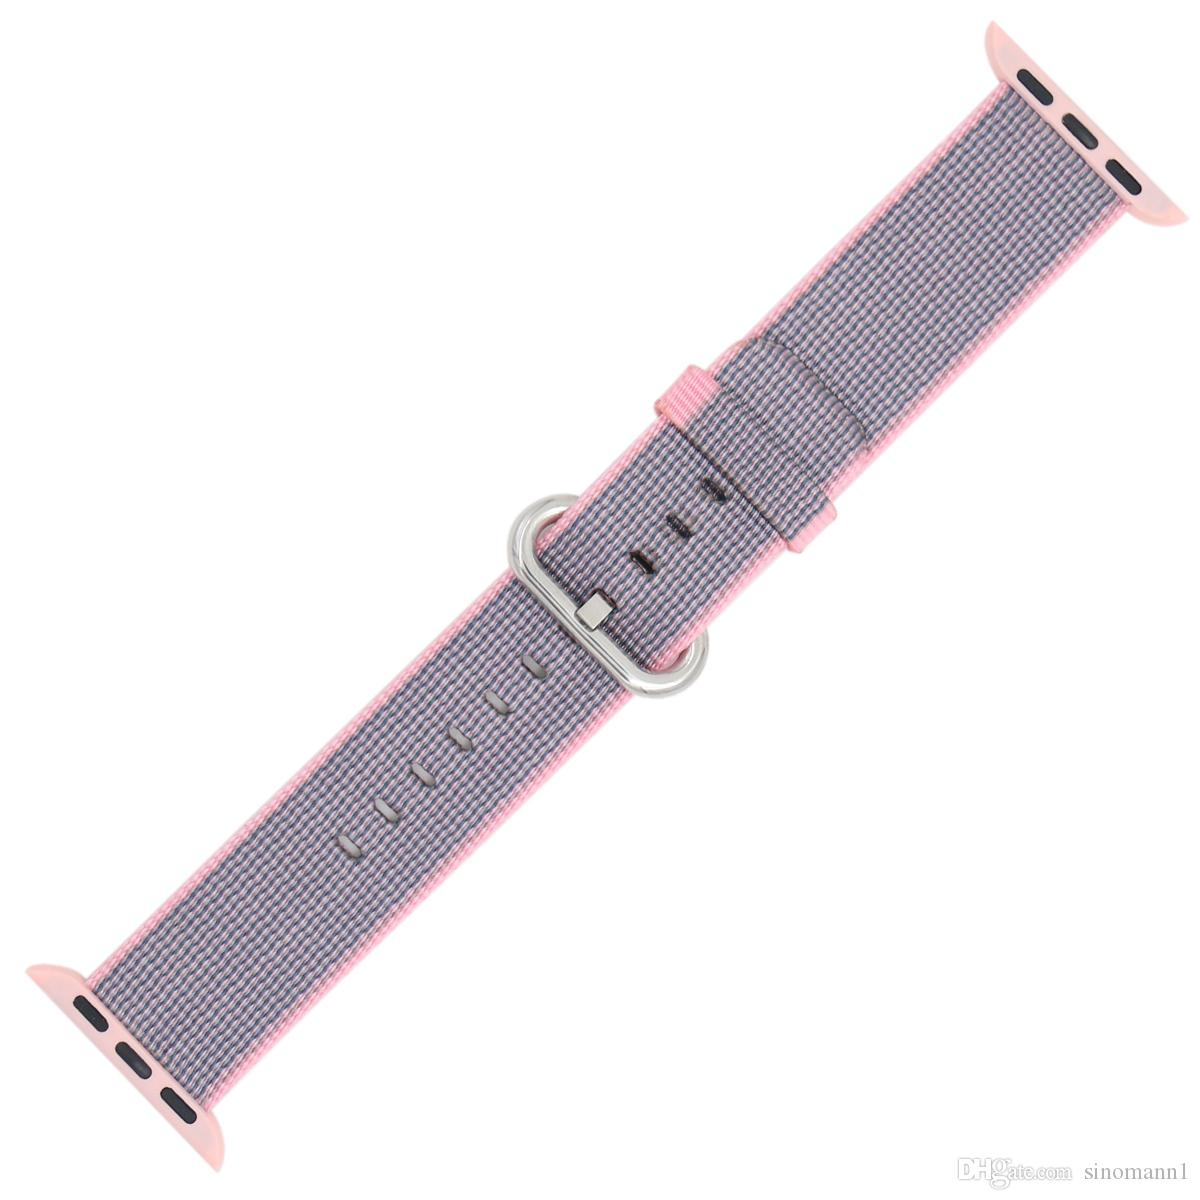 Band For Apple Watch Pink Stripes Woven Nylon Fabric Buckle Watchband 38mm 42mm Sport Strap For iWatch 3/2 Watches Accessories